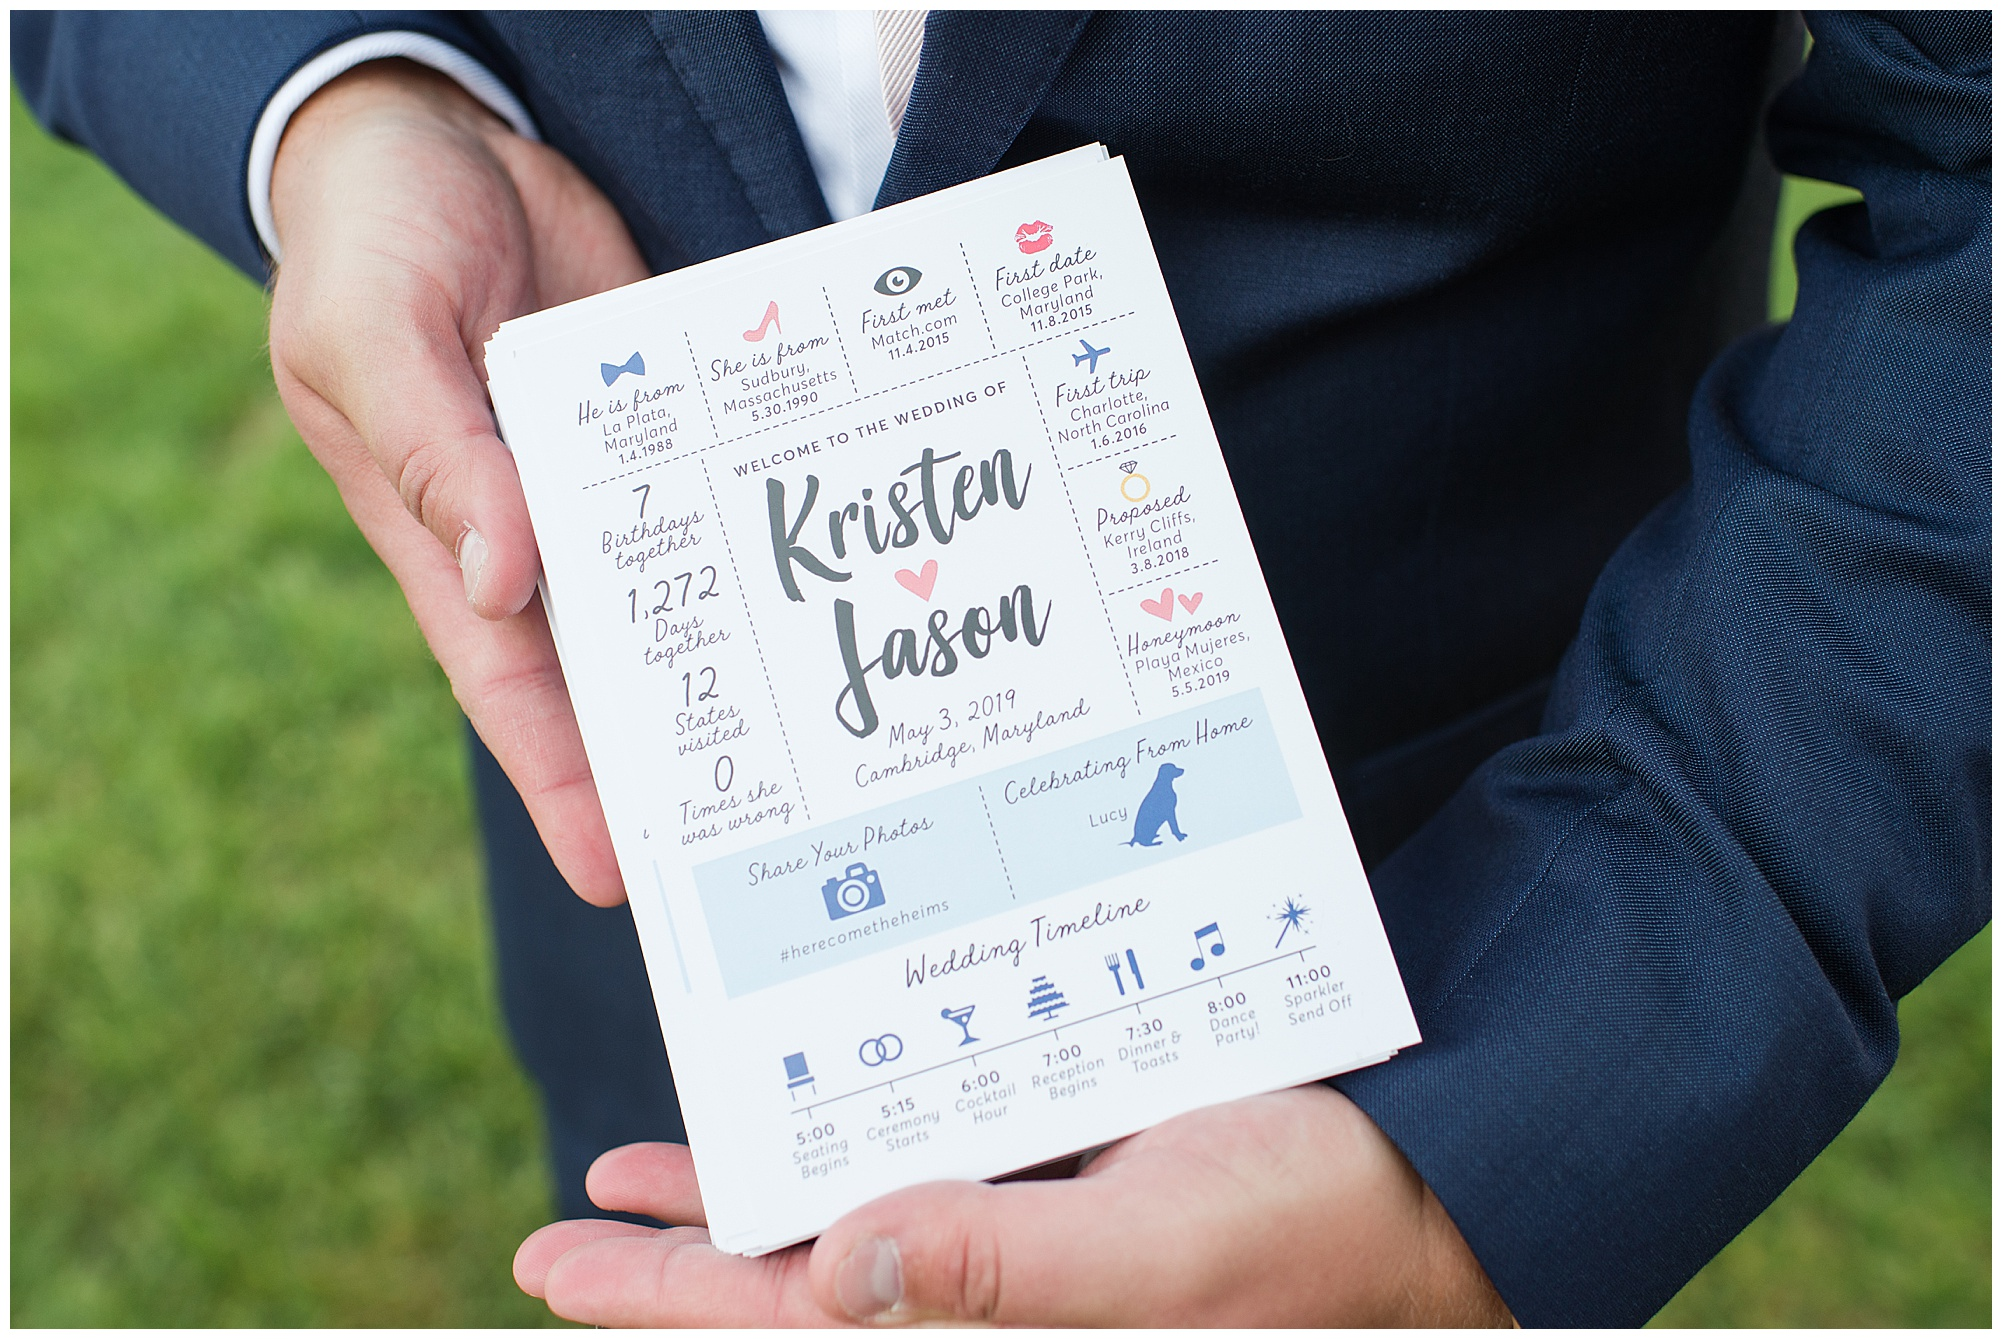 Photo shows wedding hashtag in use on a wedding program.